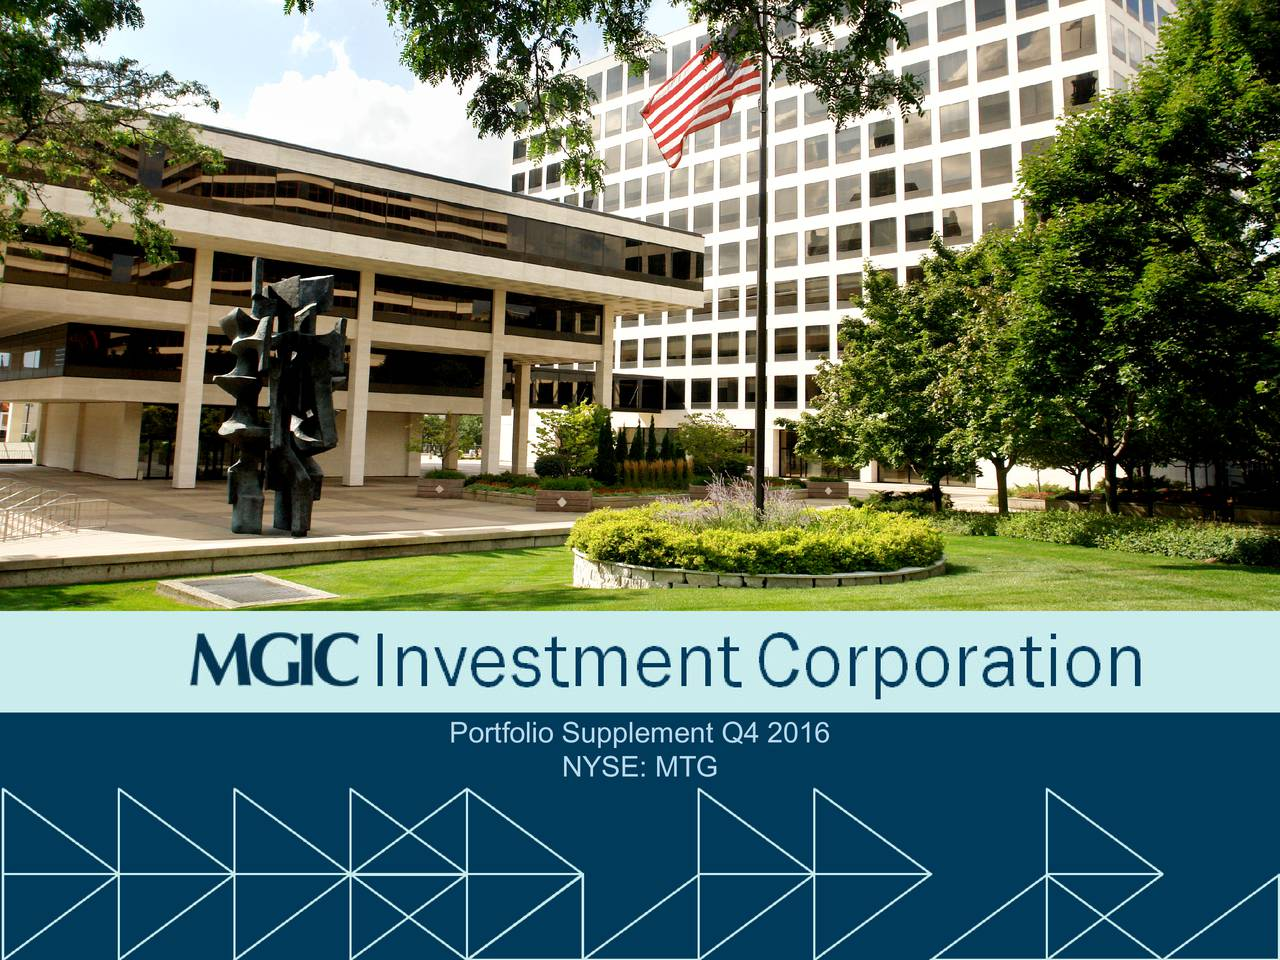 mgic investment corporation 2016 q4 results earnings